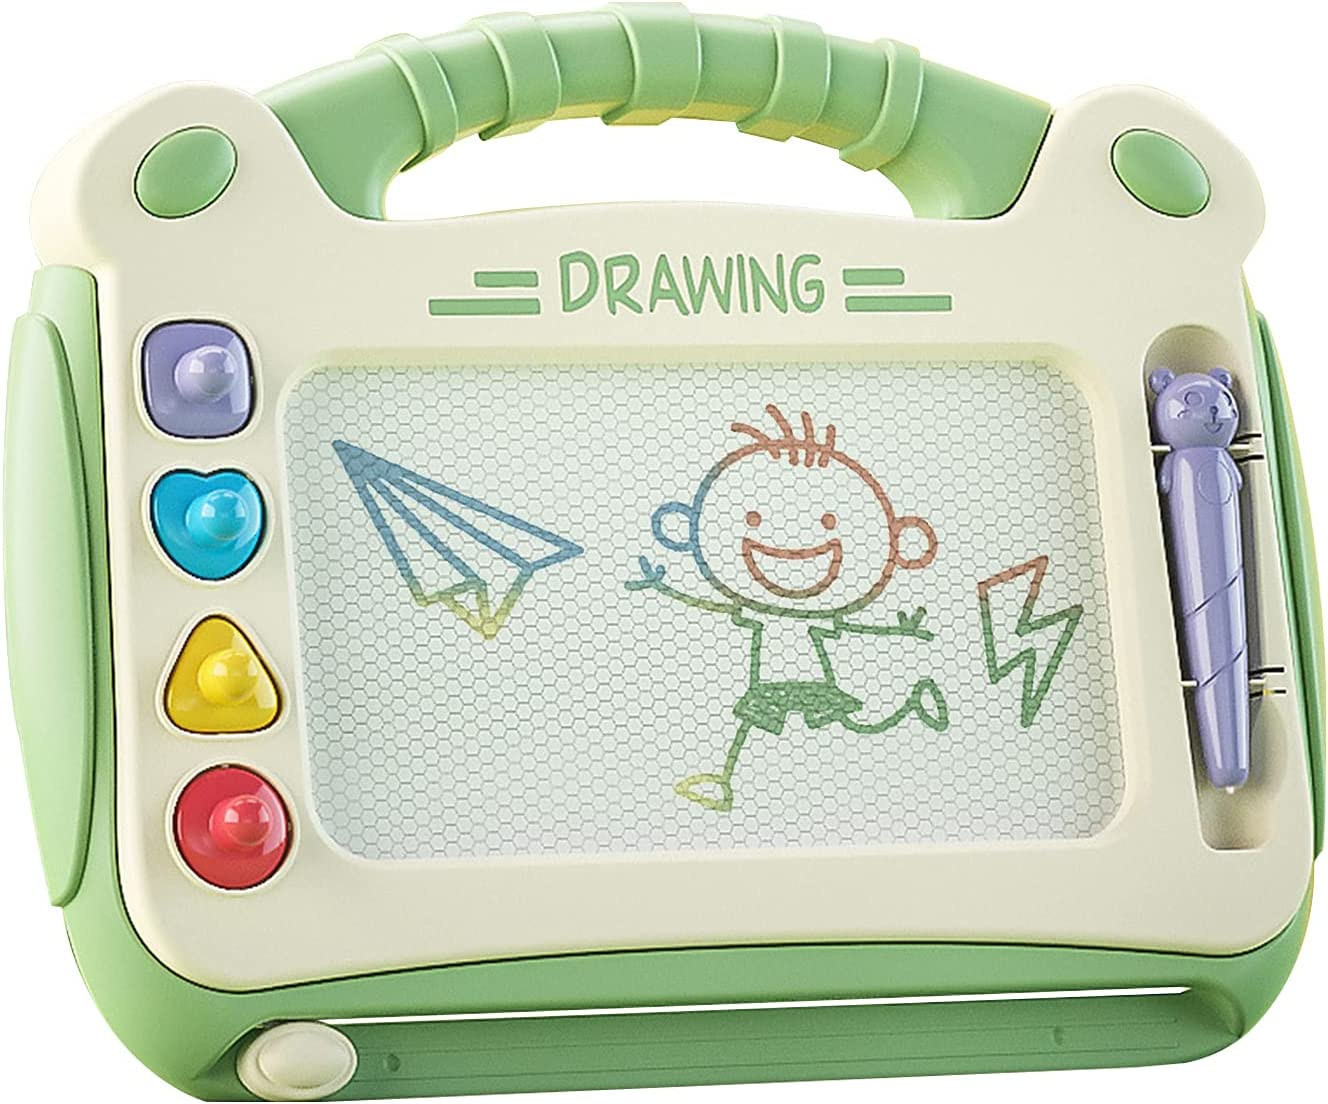 Aibecy1 Magnetic Drawing Board Paintin Game trust Graffiti Genuine Free Shipping Educational